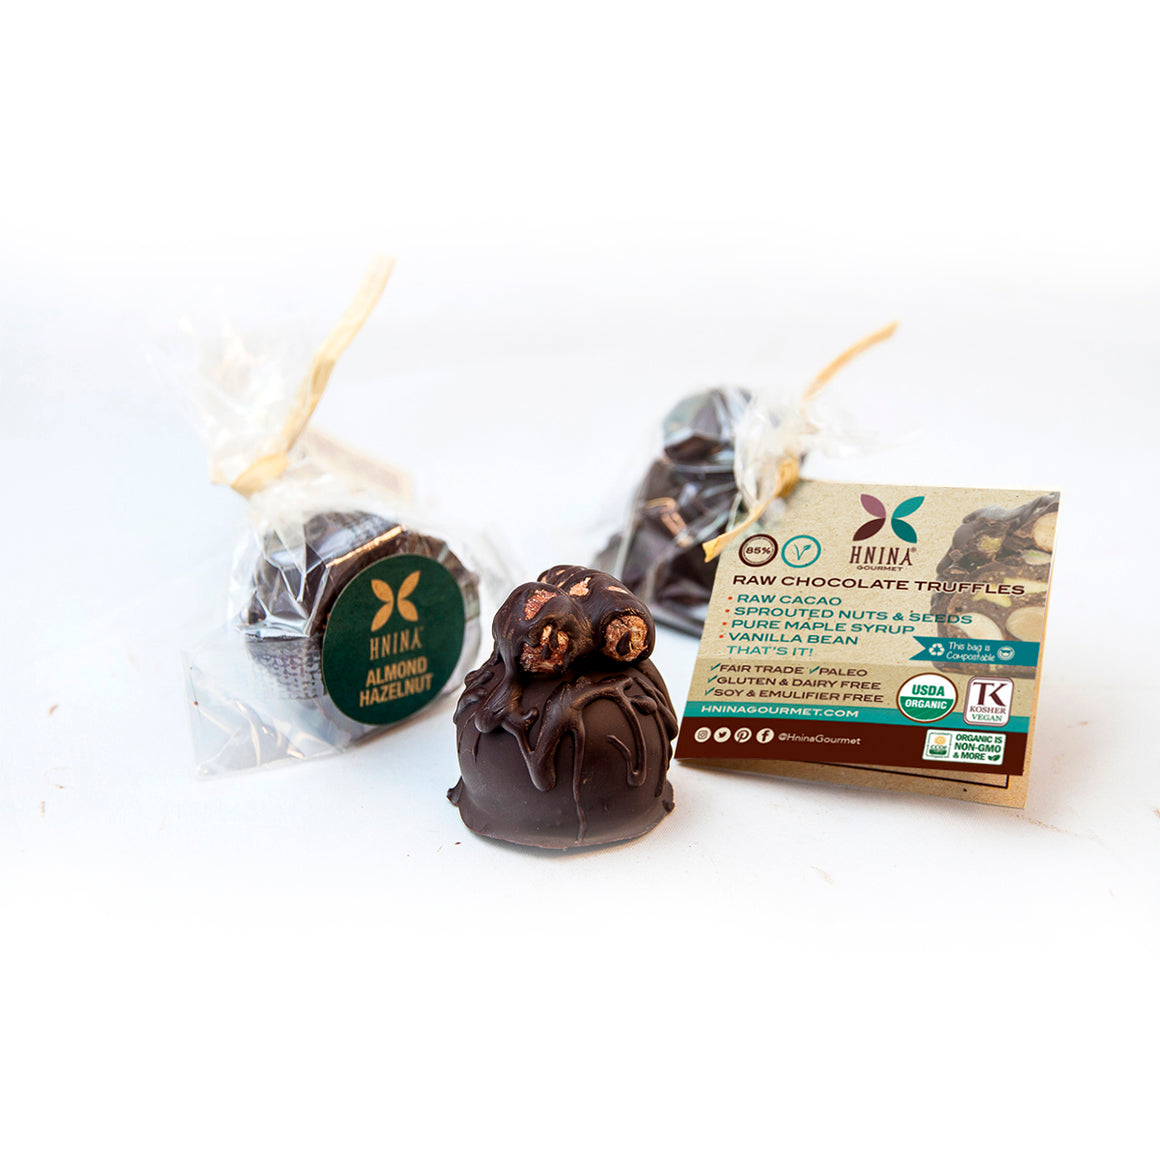 Healthy gourmet raw dark chocolate sprouted almonds sprouted hazelnuts pure maple syrup & vanilla